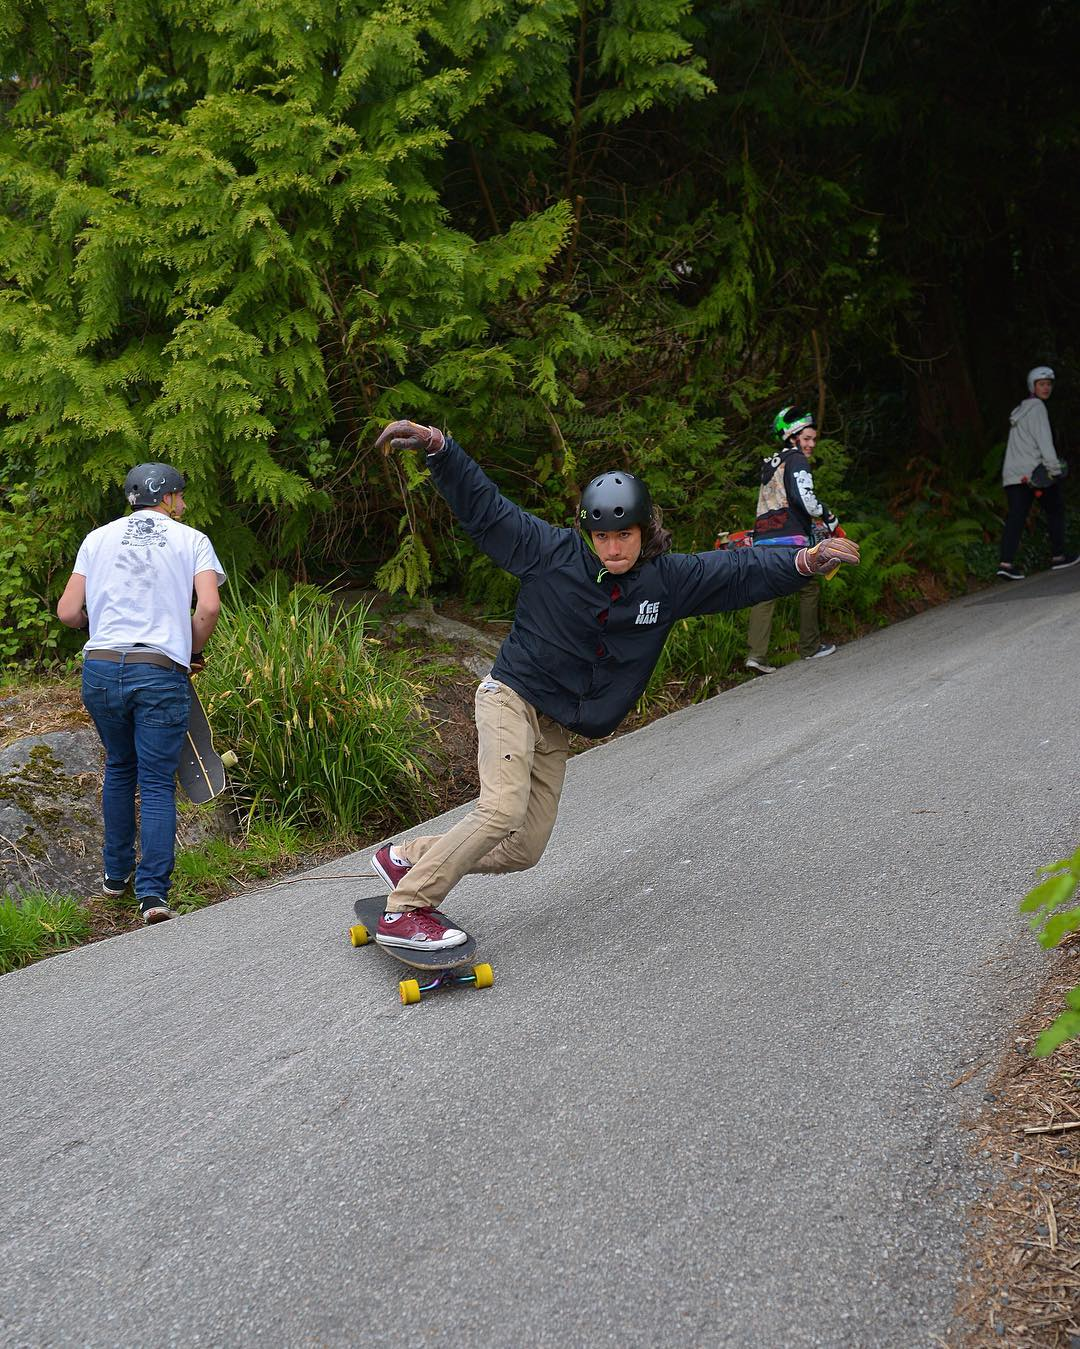 Soaring like an eagle, #paristruckco Team Rider @sho_ouellette took flight at the @flatspotshop X @longboardlarry Highway Jam over the weekend.